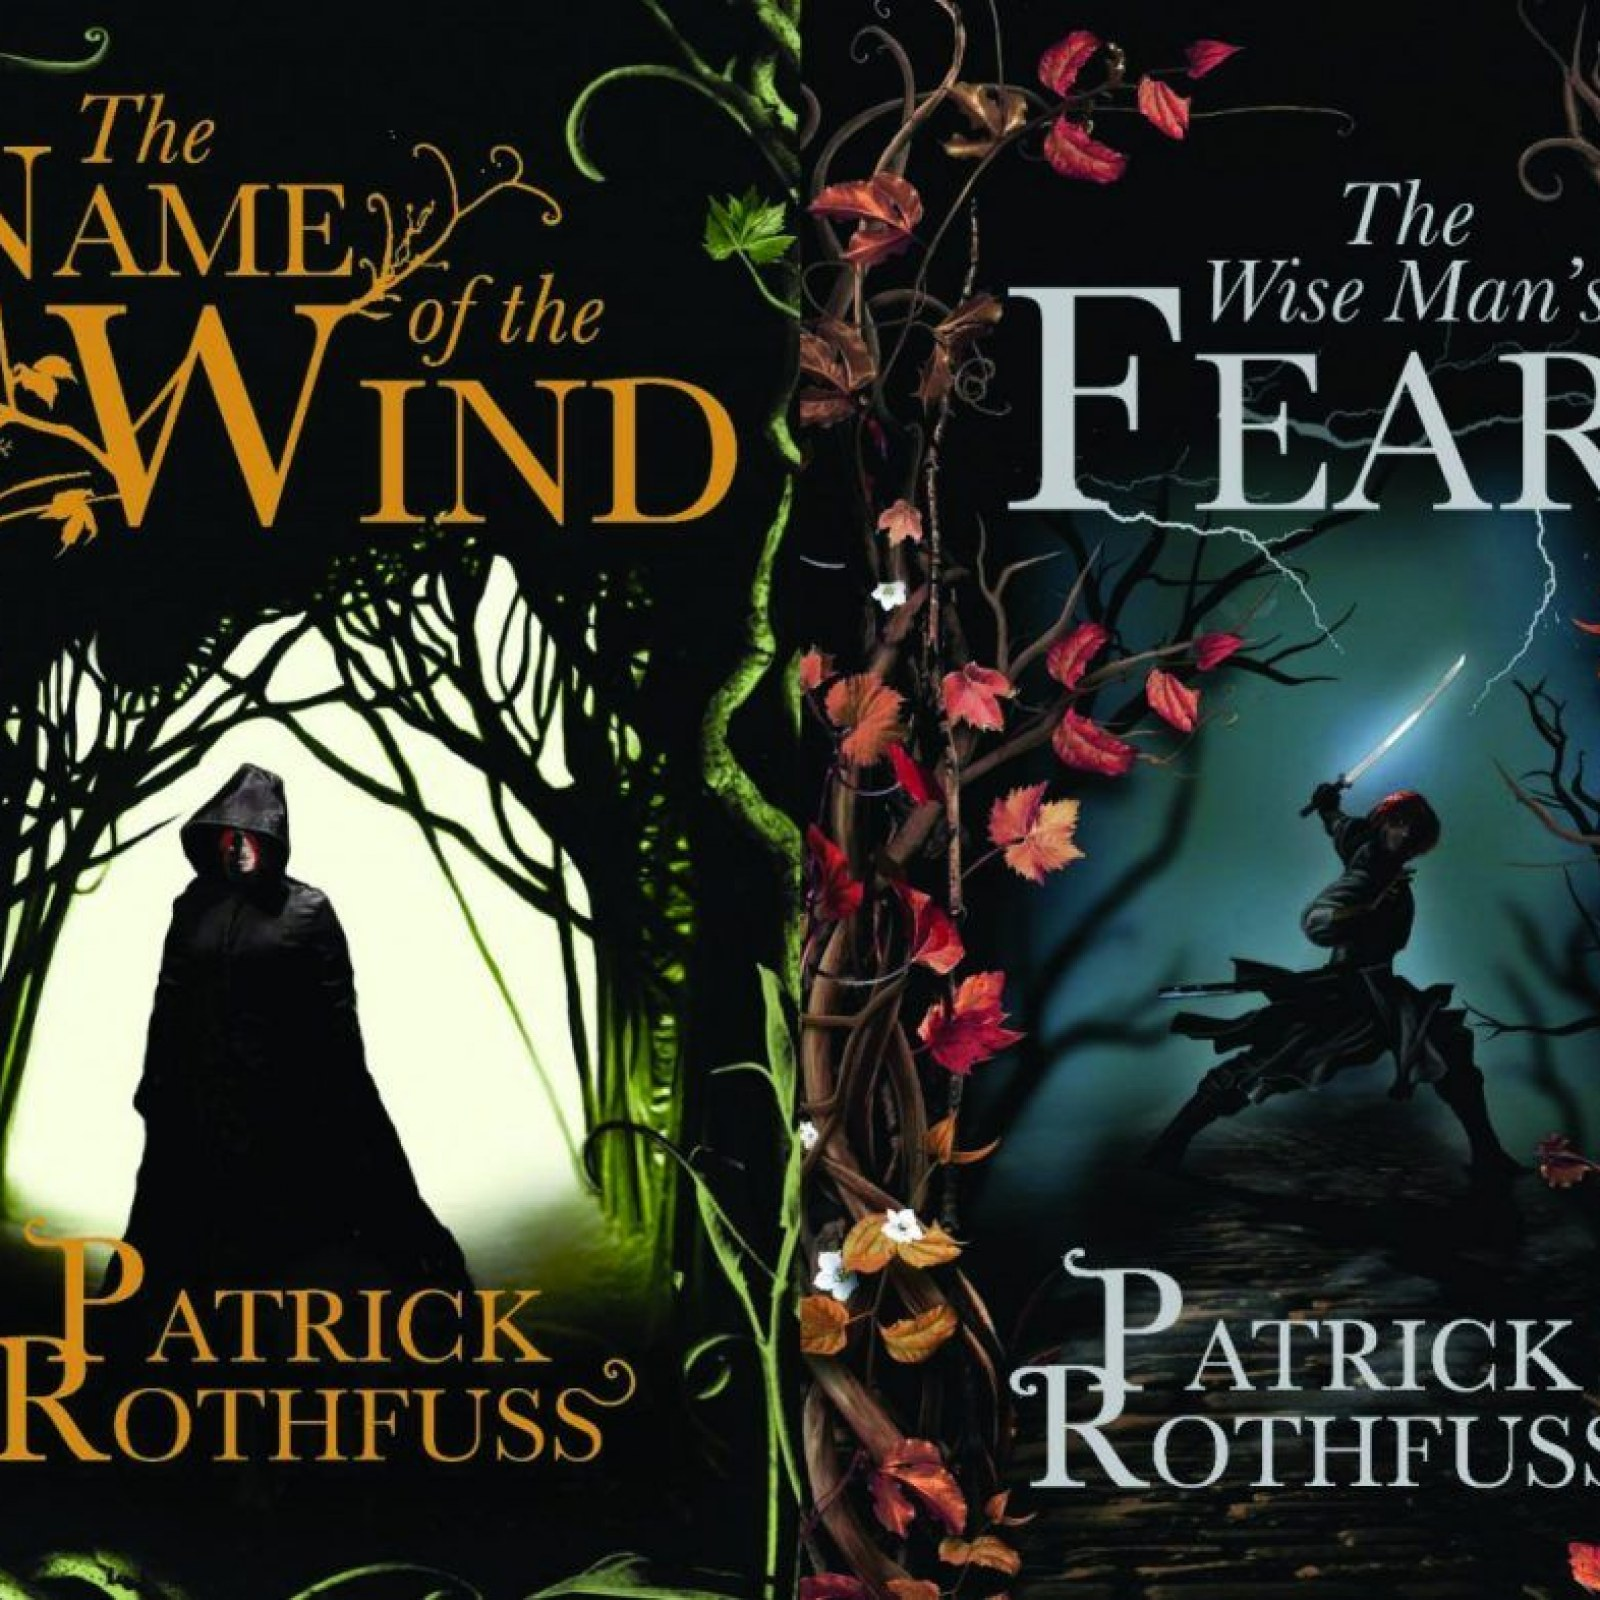 Kingkiller Chronicle Author Patrick Rothfuss Shares A